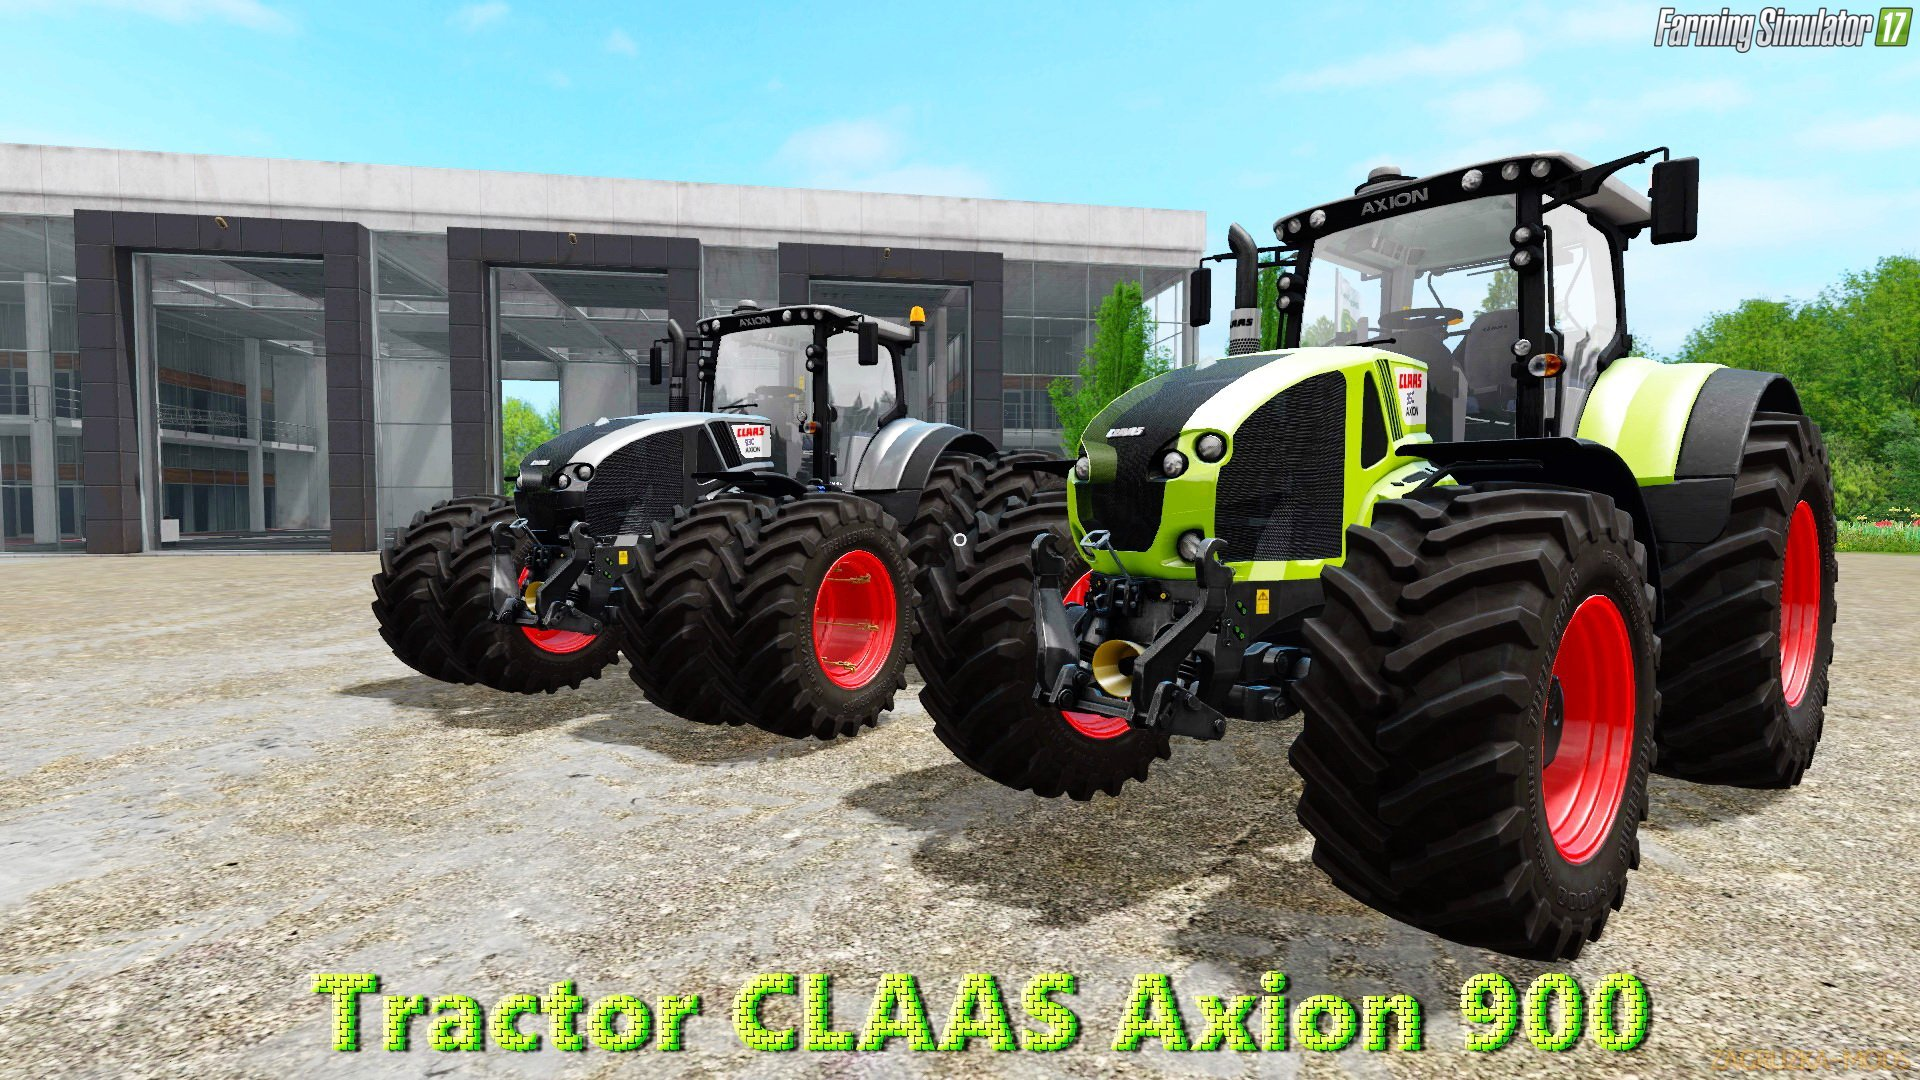 Claas Axion 900 v1.1 by Smety for FS 17